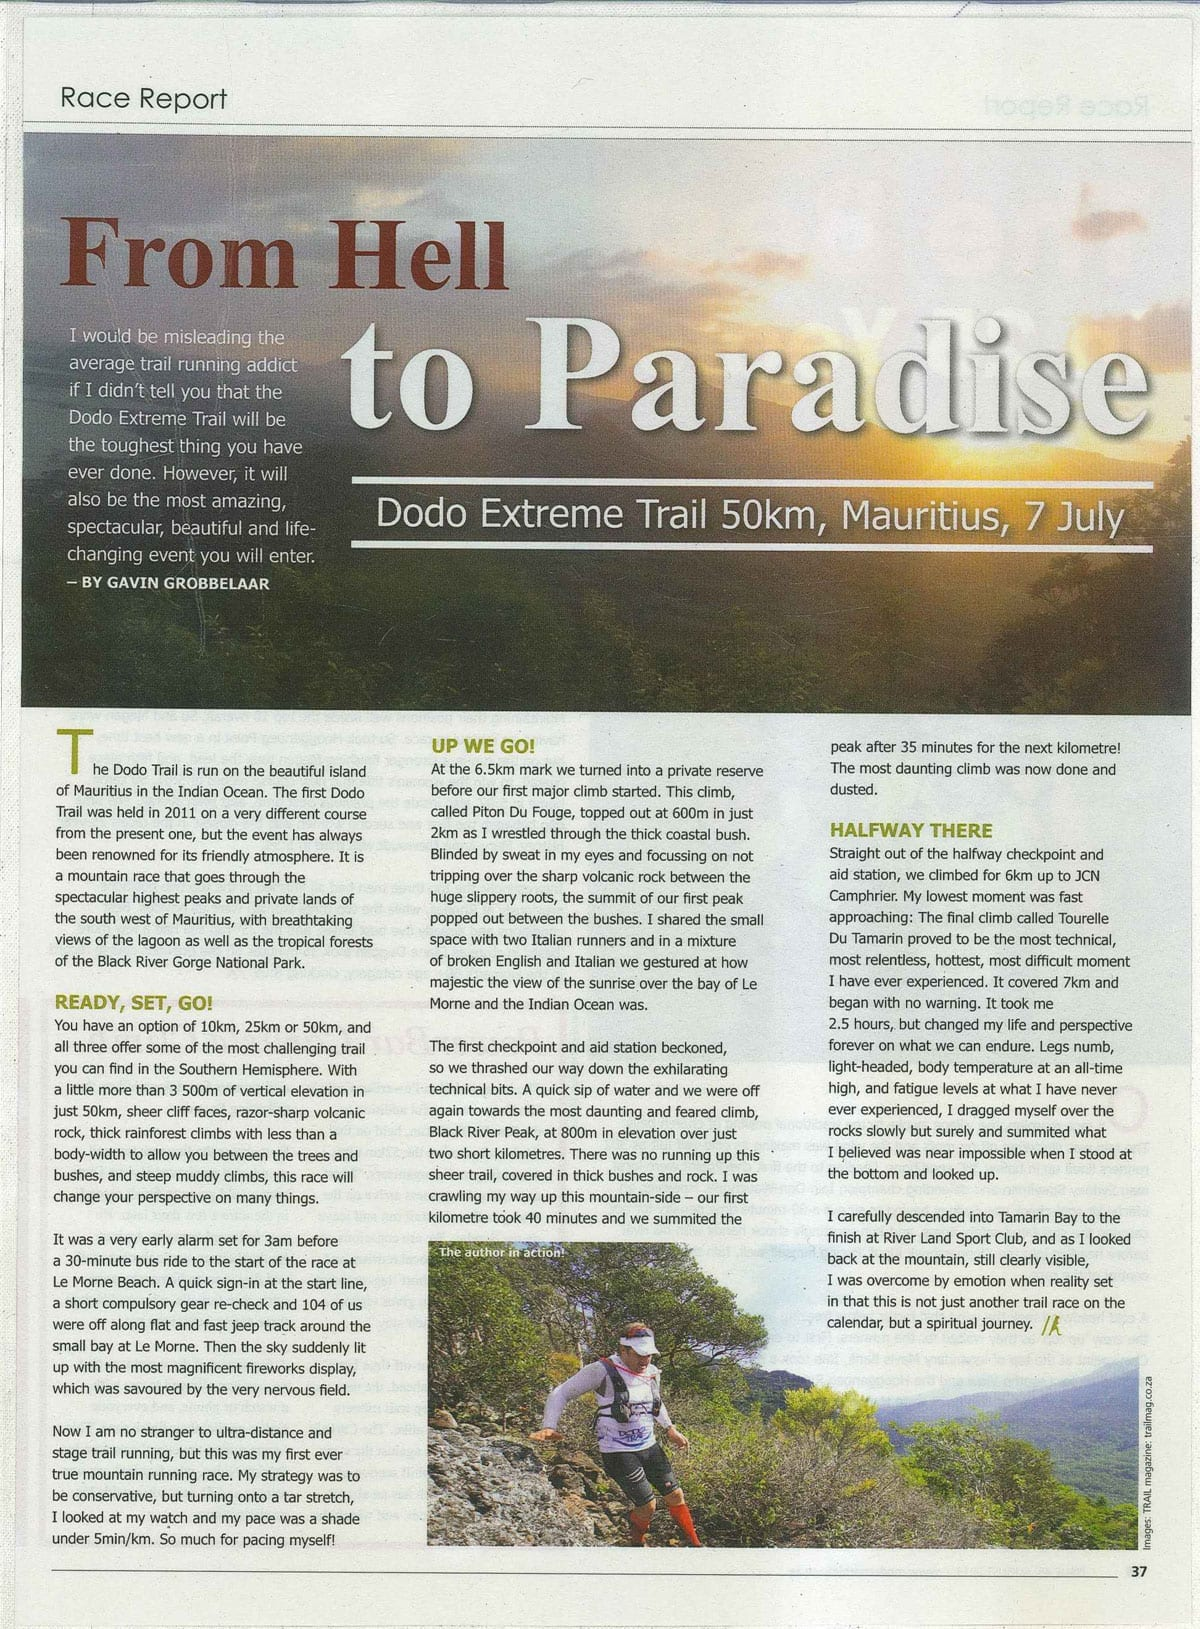 From Hell to Paradise, Modern Athlete